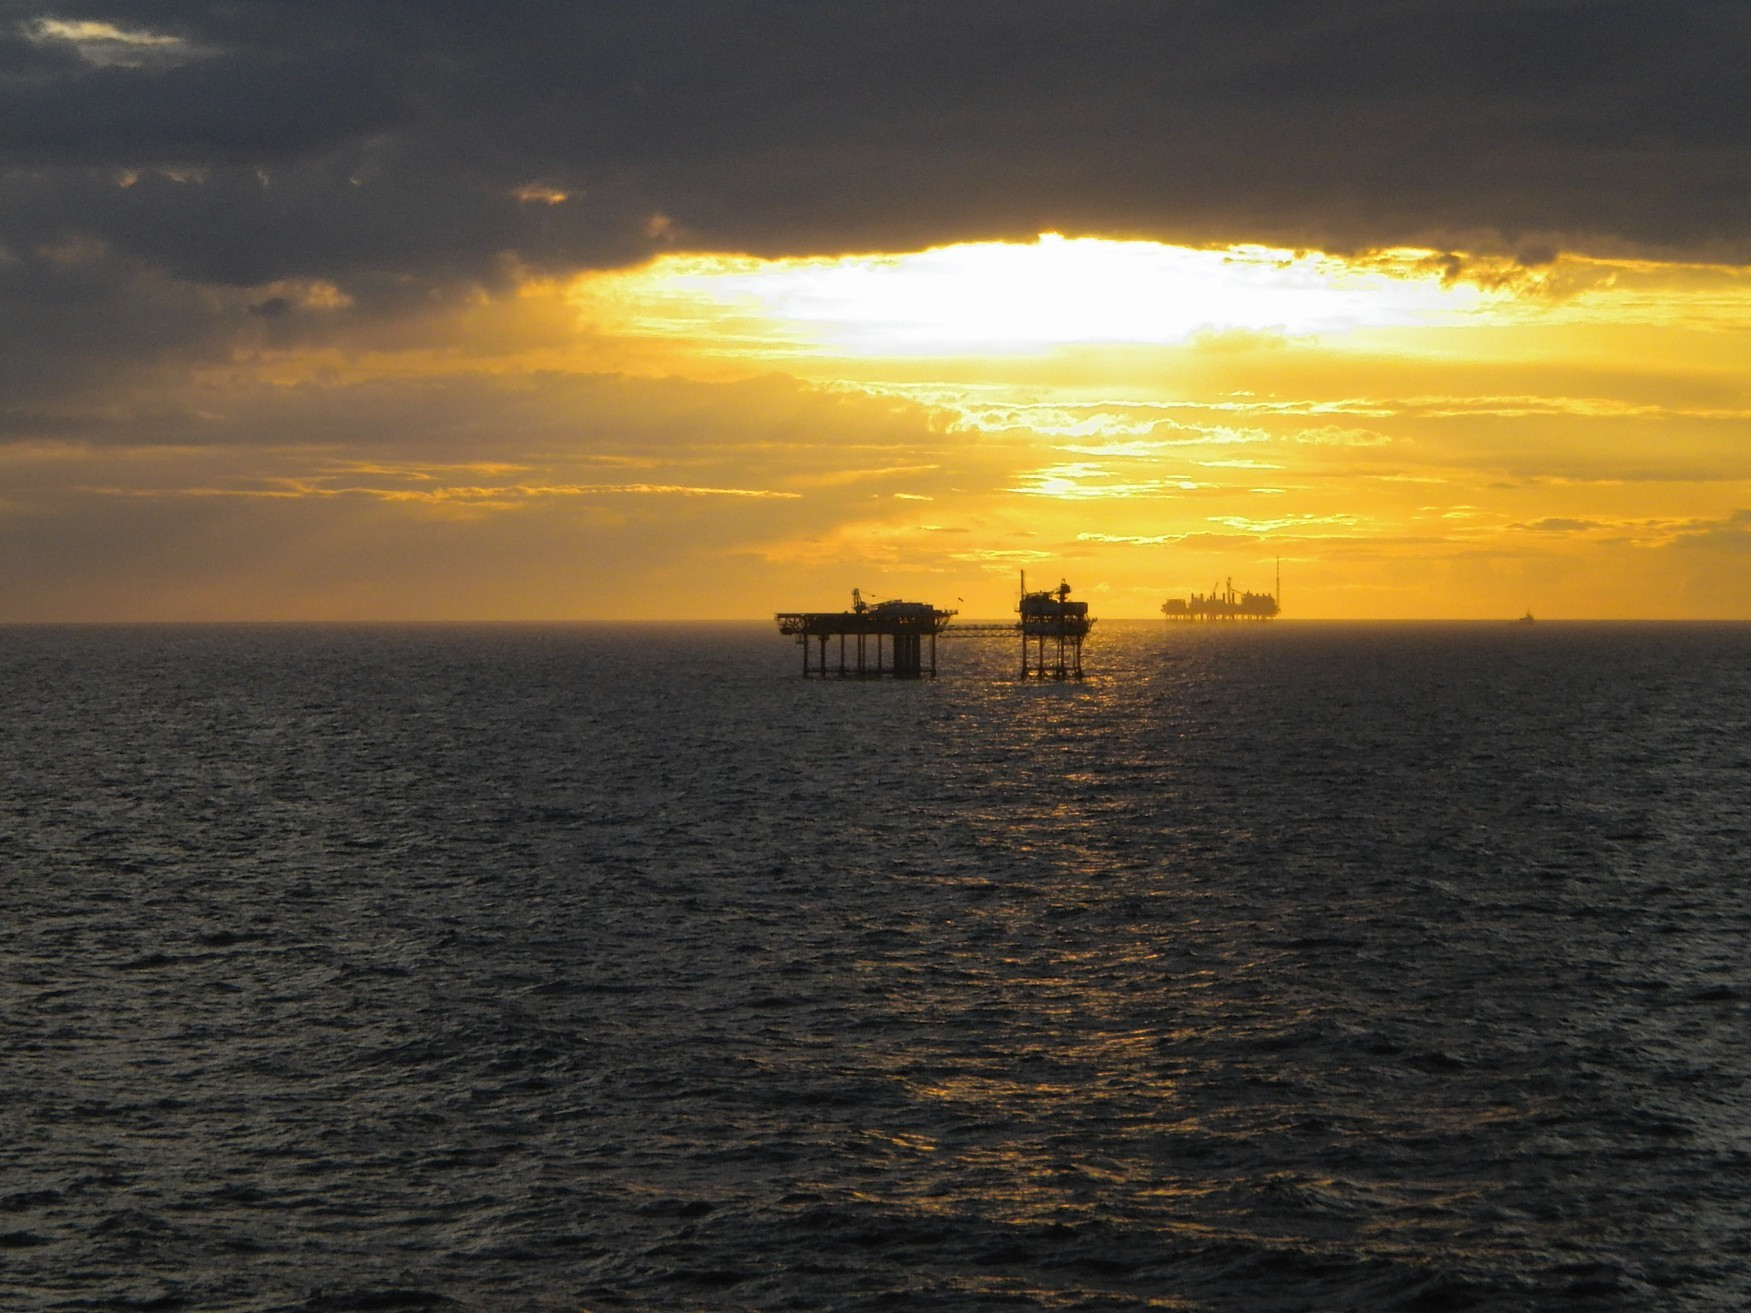 North Sea gas market set to hit 'deadlock' over summer, Woodmac claims - News for the Oil and Gas Sector